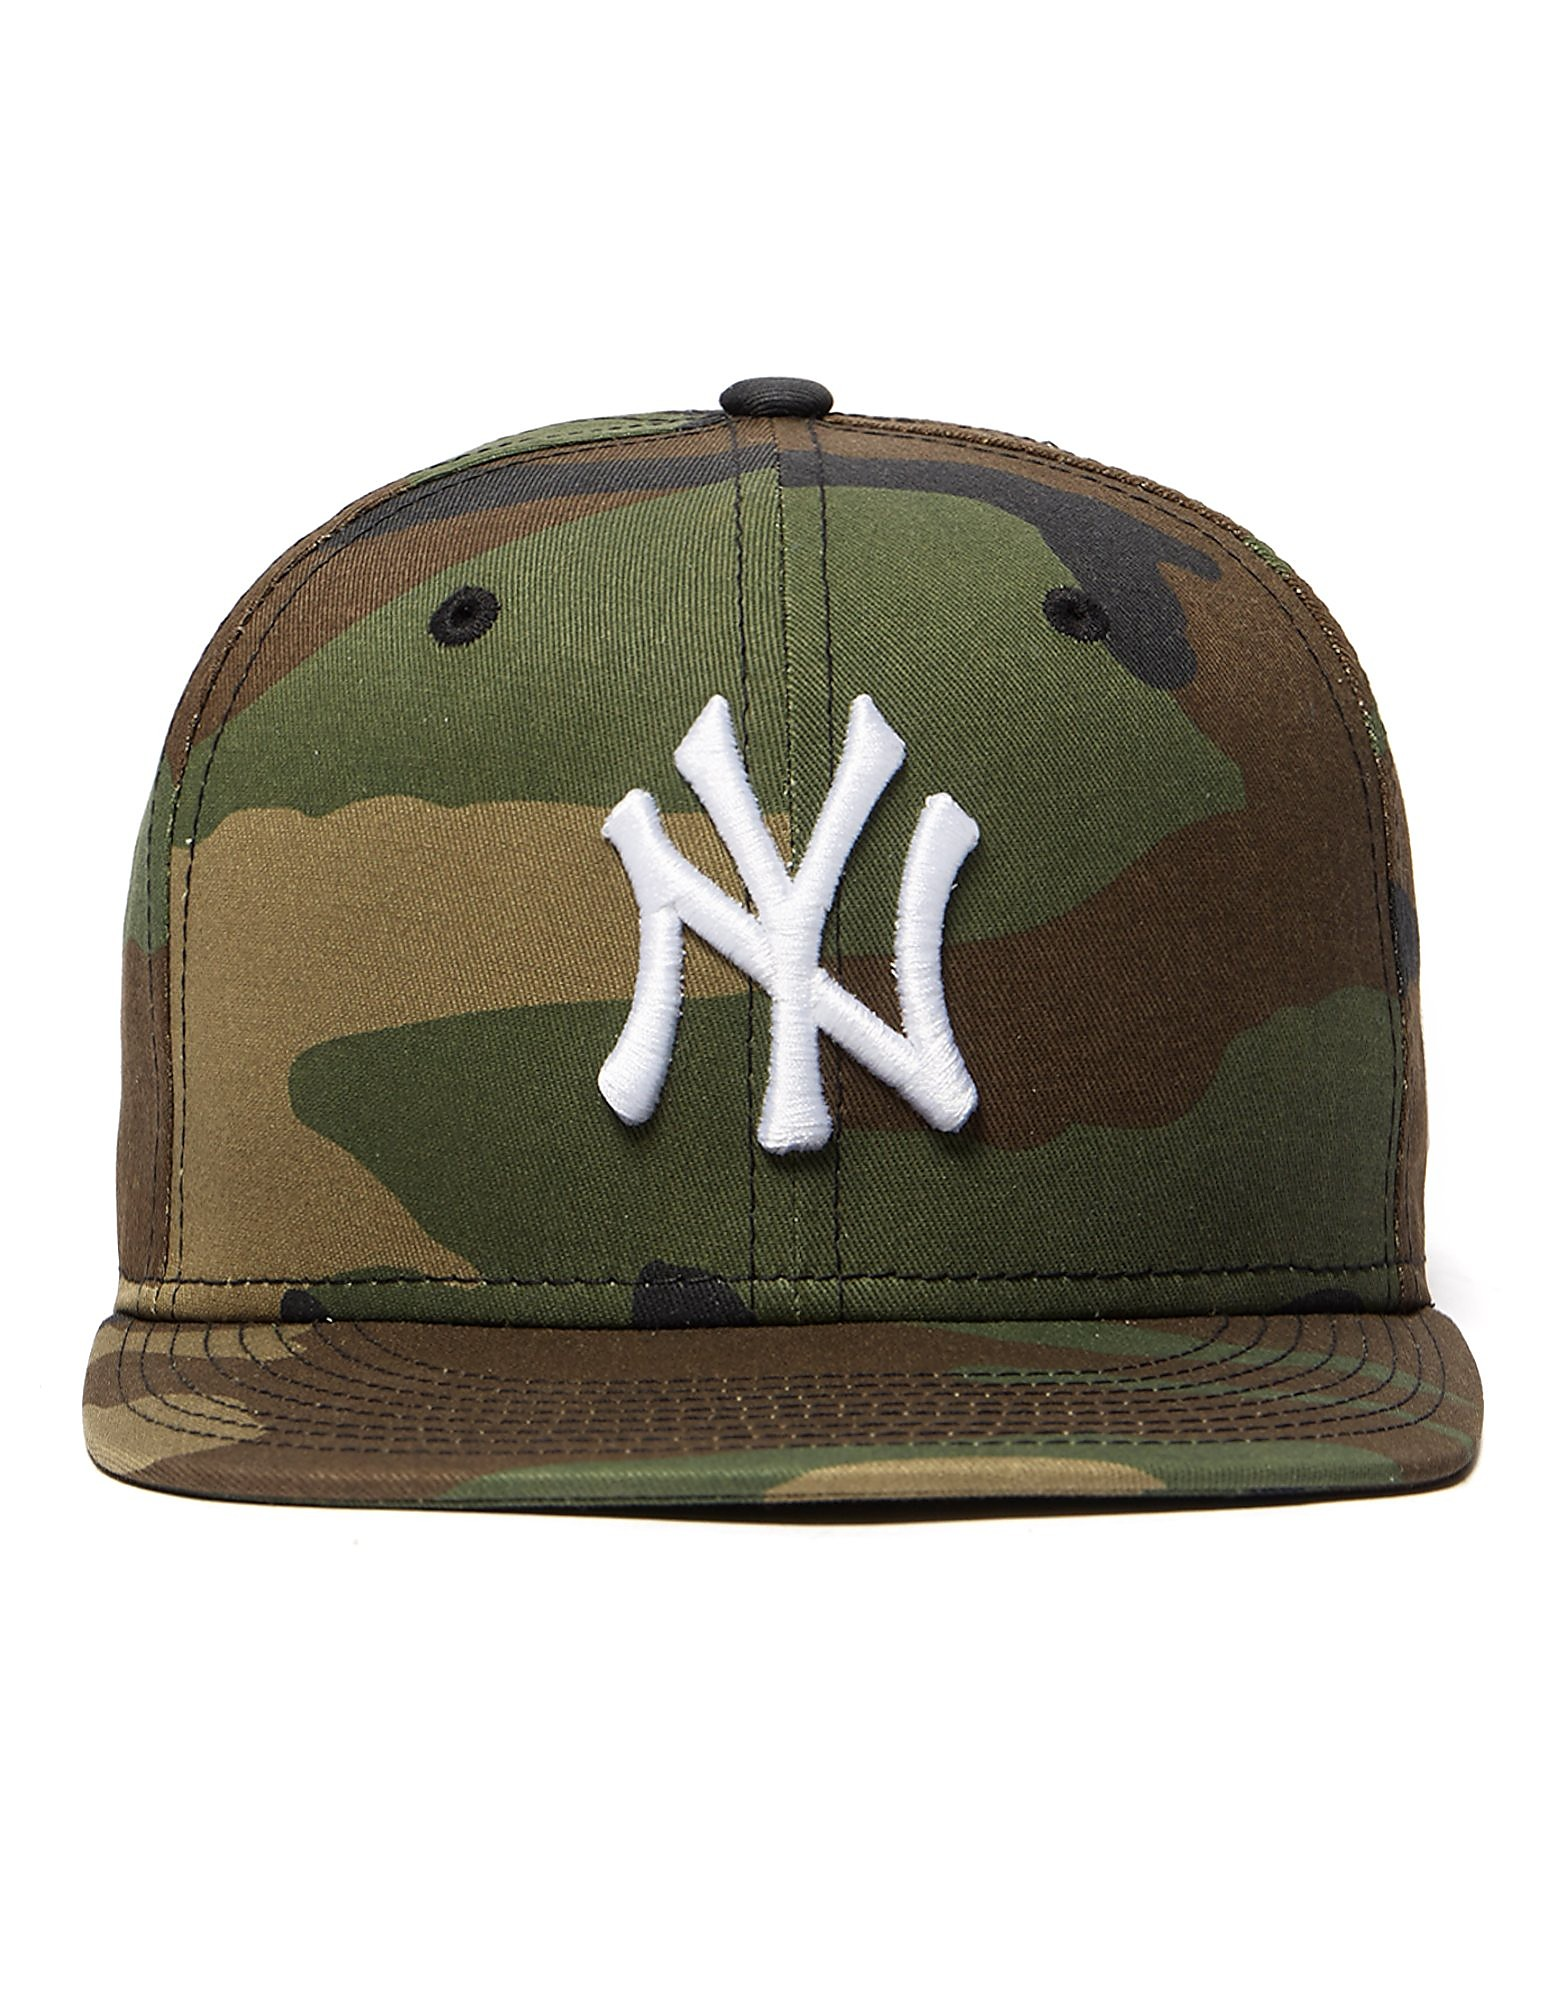 New Era 9FIFTY MLB New York Yankees Snapback Ca